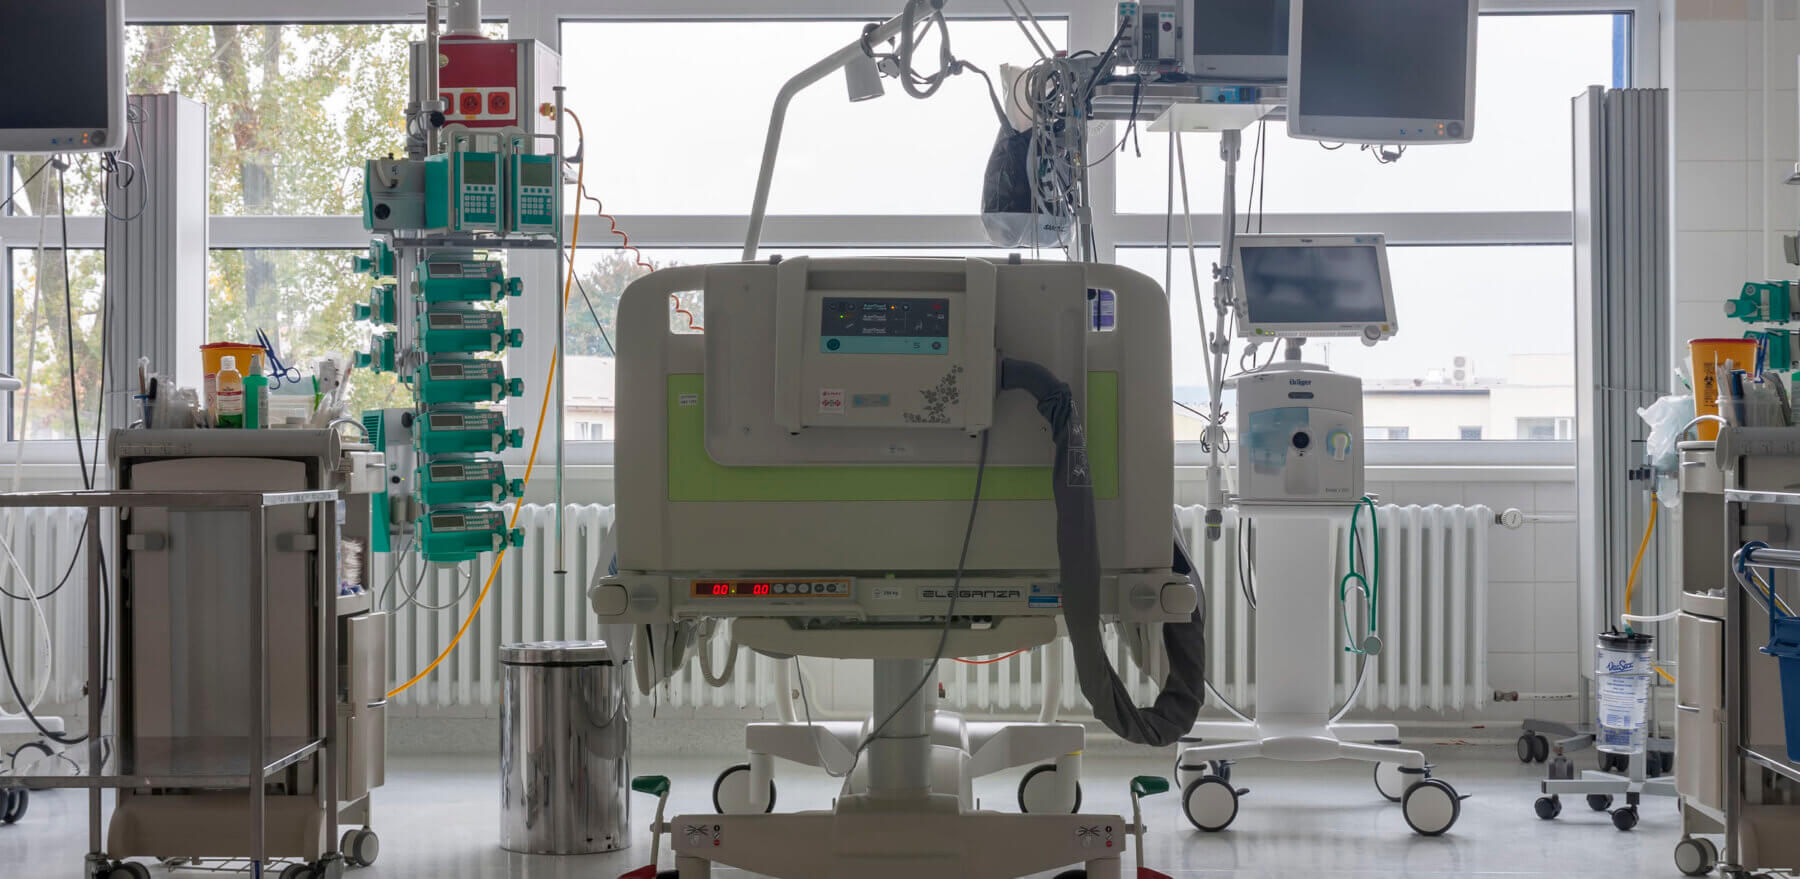 Svitavy, Czech Republic -September 21, 2017: Intensive care unit in hospital, bed with monitors, ventilator, a place where can be  treated patients with pneumonia caused by coronavirus covid 19.